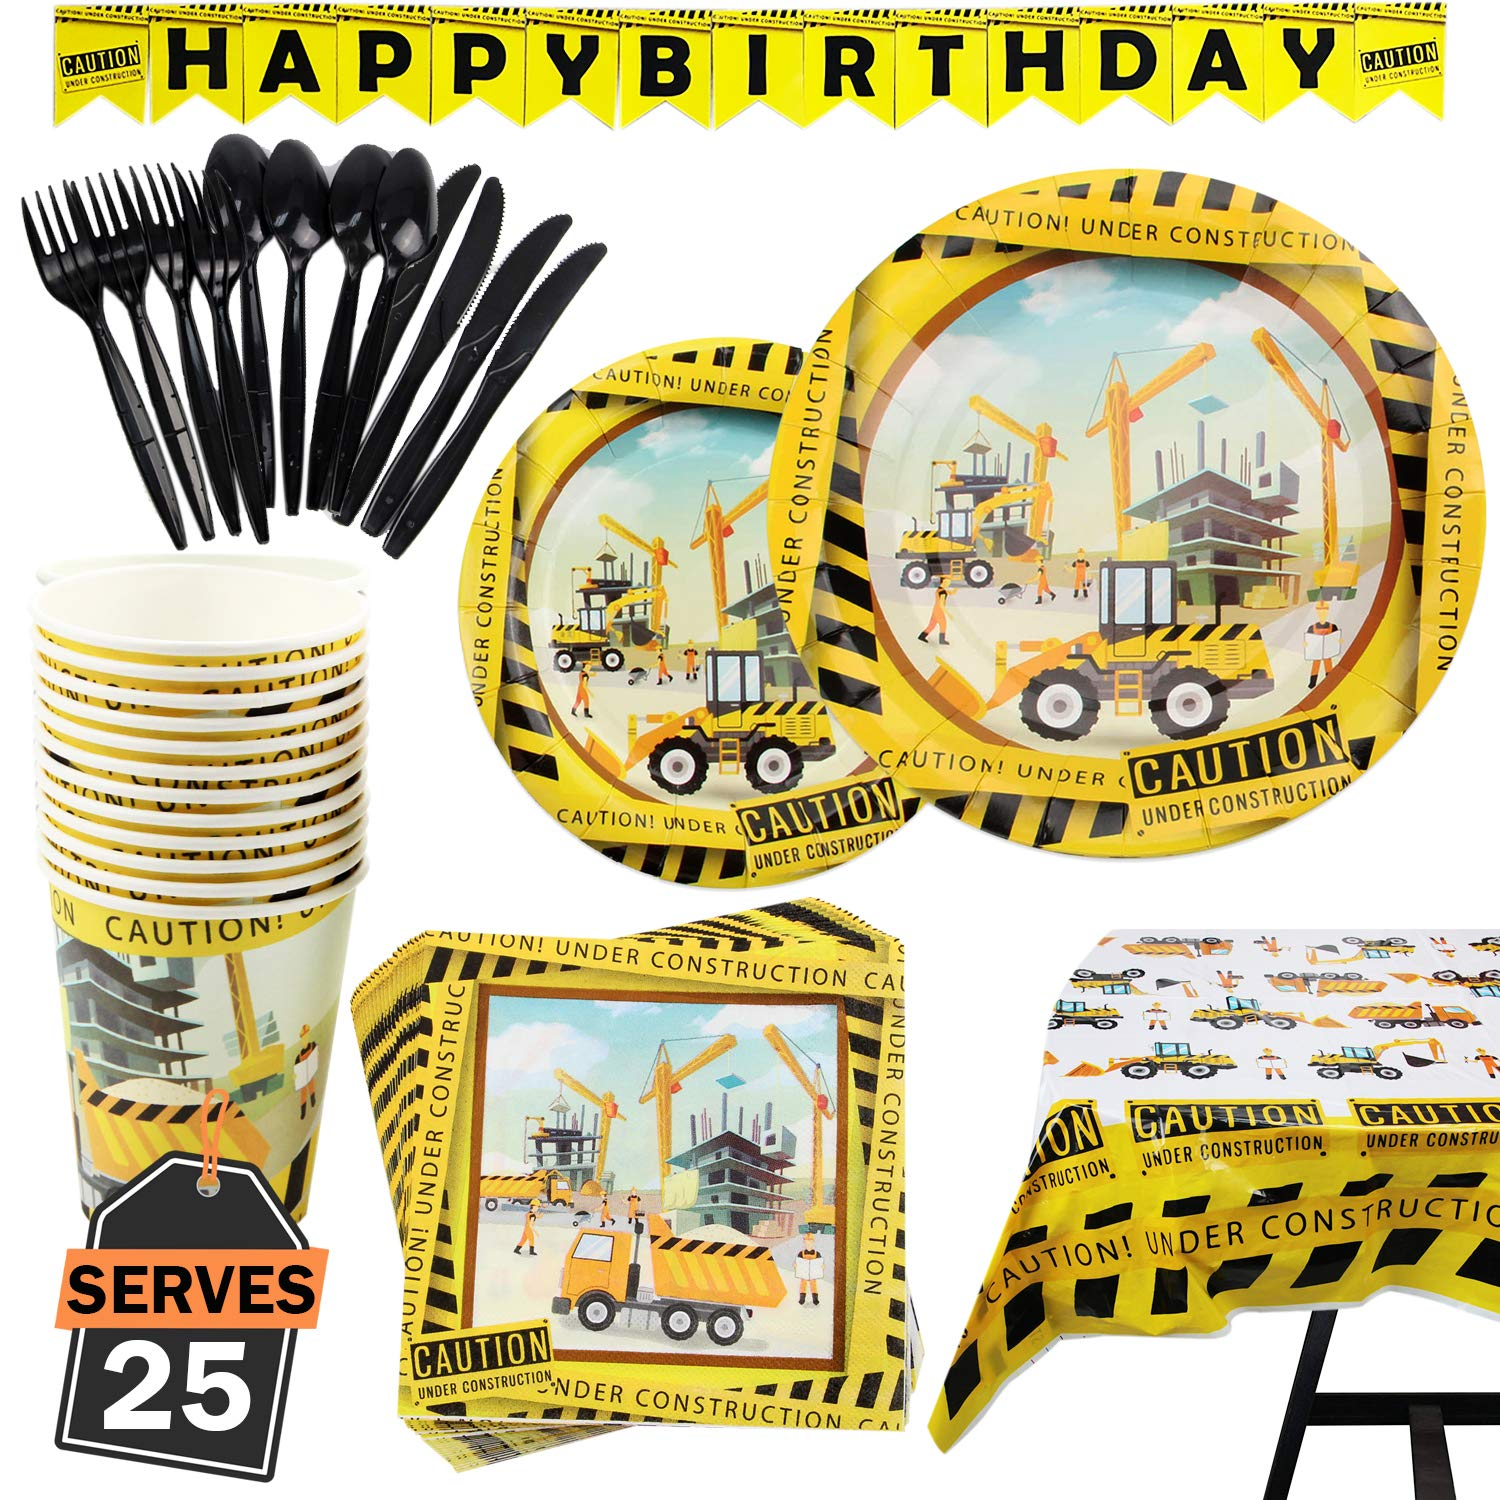 177 Piece Construction Party Supplies Set Including Plates, Cups, Napkins, Spoons, Forks, Knives, Tablecloth and Banner, Serves 25 by Scale Rank